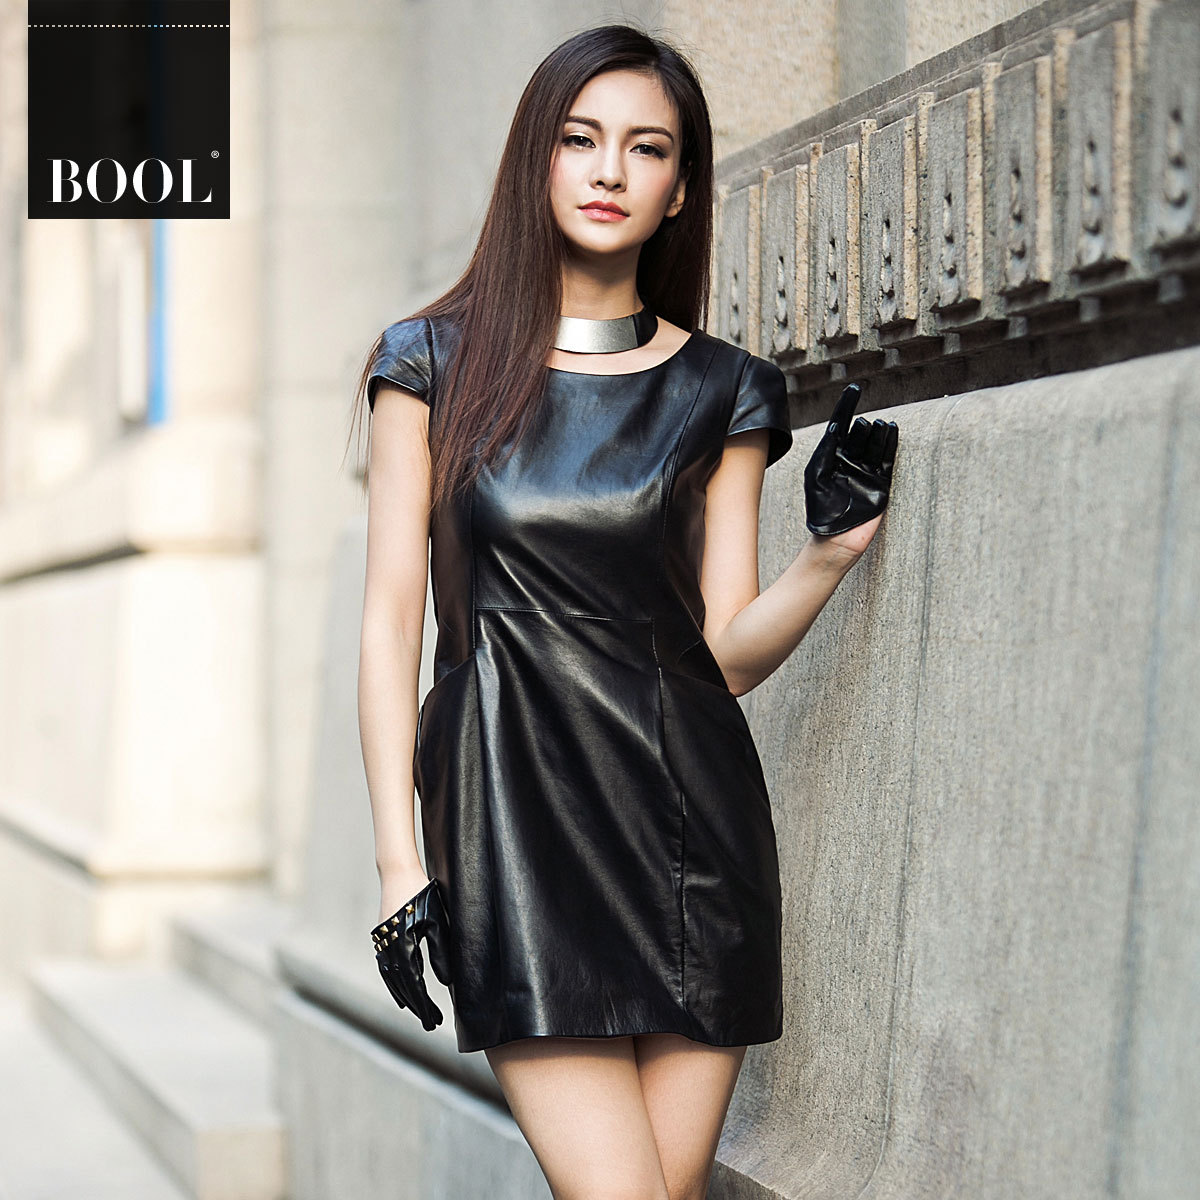 Women In Leather Skirts - Skirts